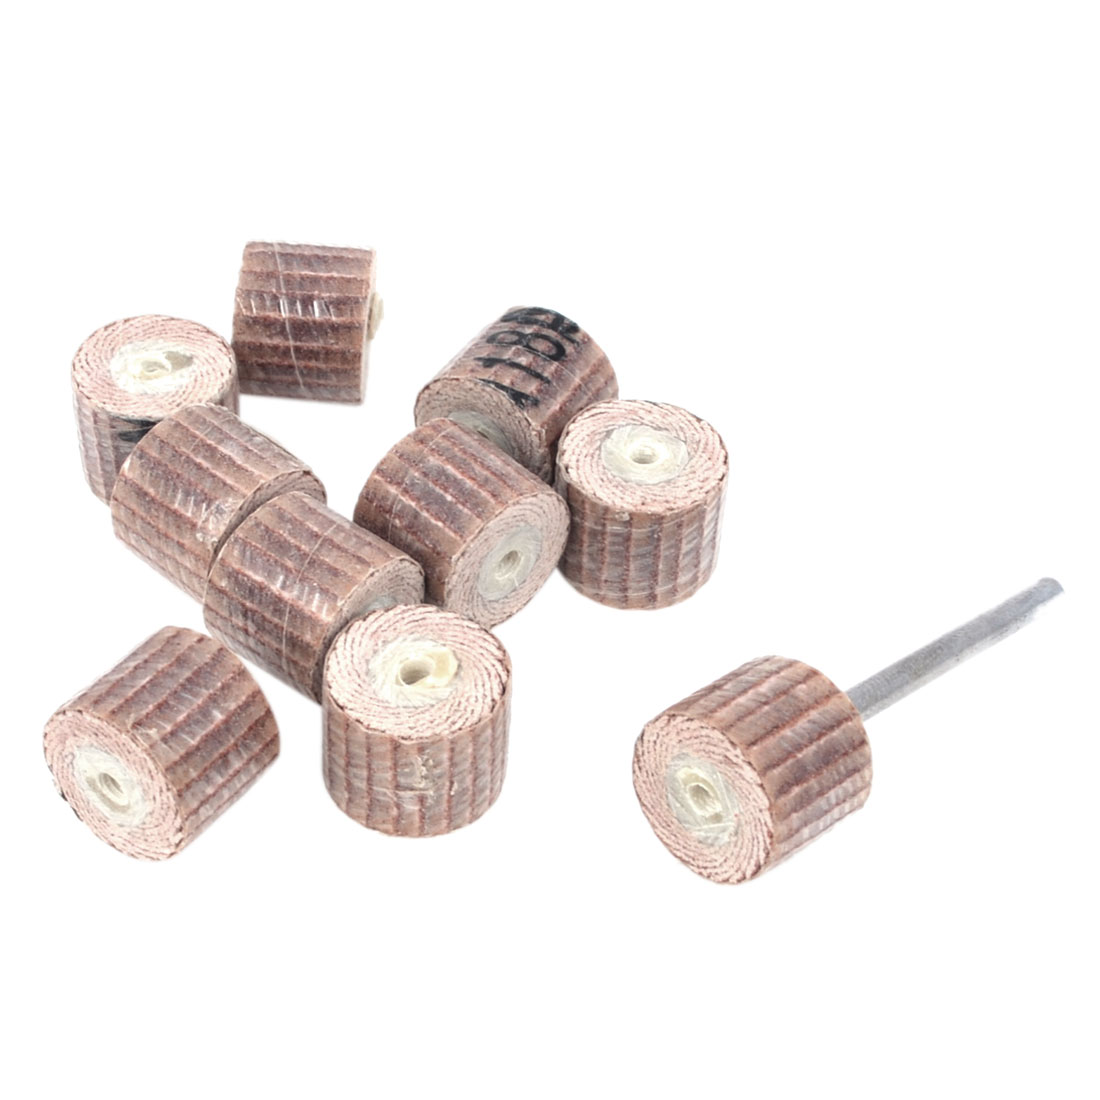 10 Pcs 14mm Dia Rosybrown Felt Polishing Wheel Polishers for Rotary Tool